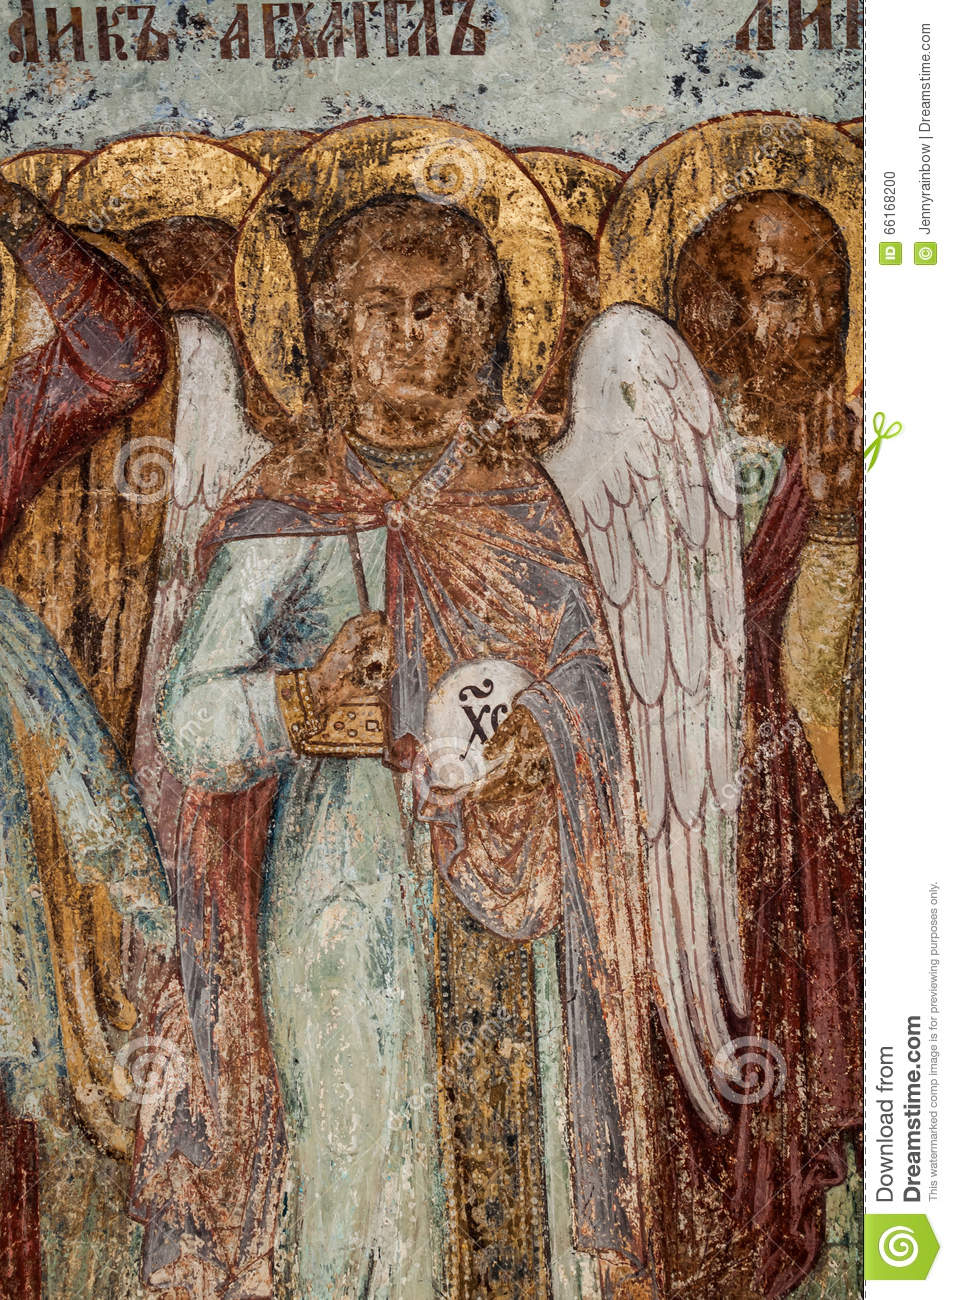 Christian mural painting stock photo image 66168200 for Christian mural paintings